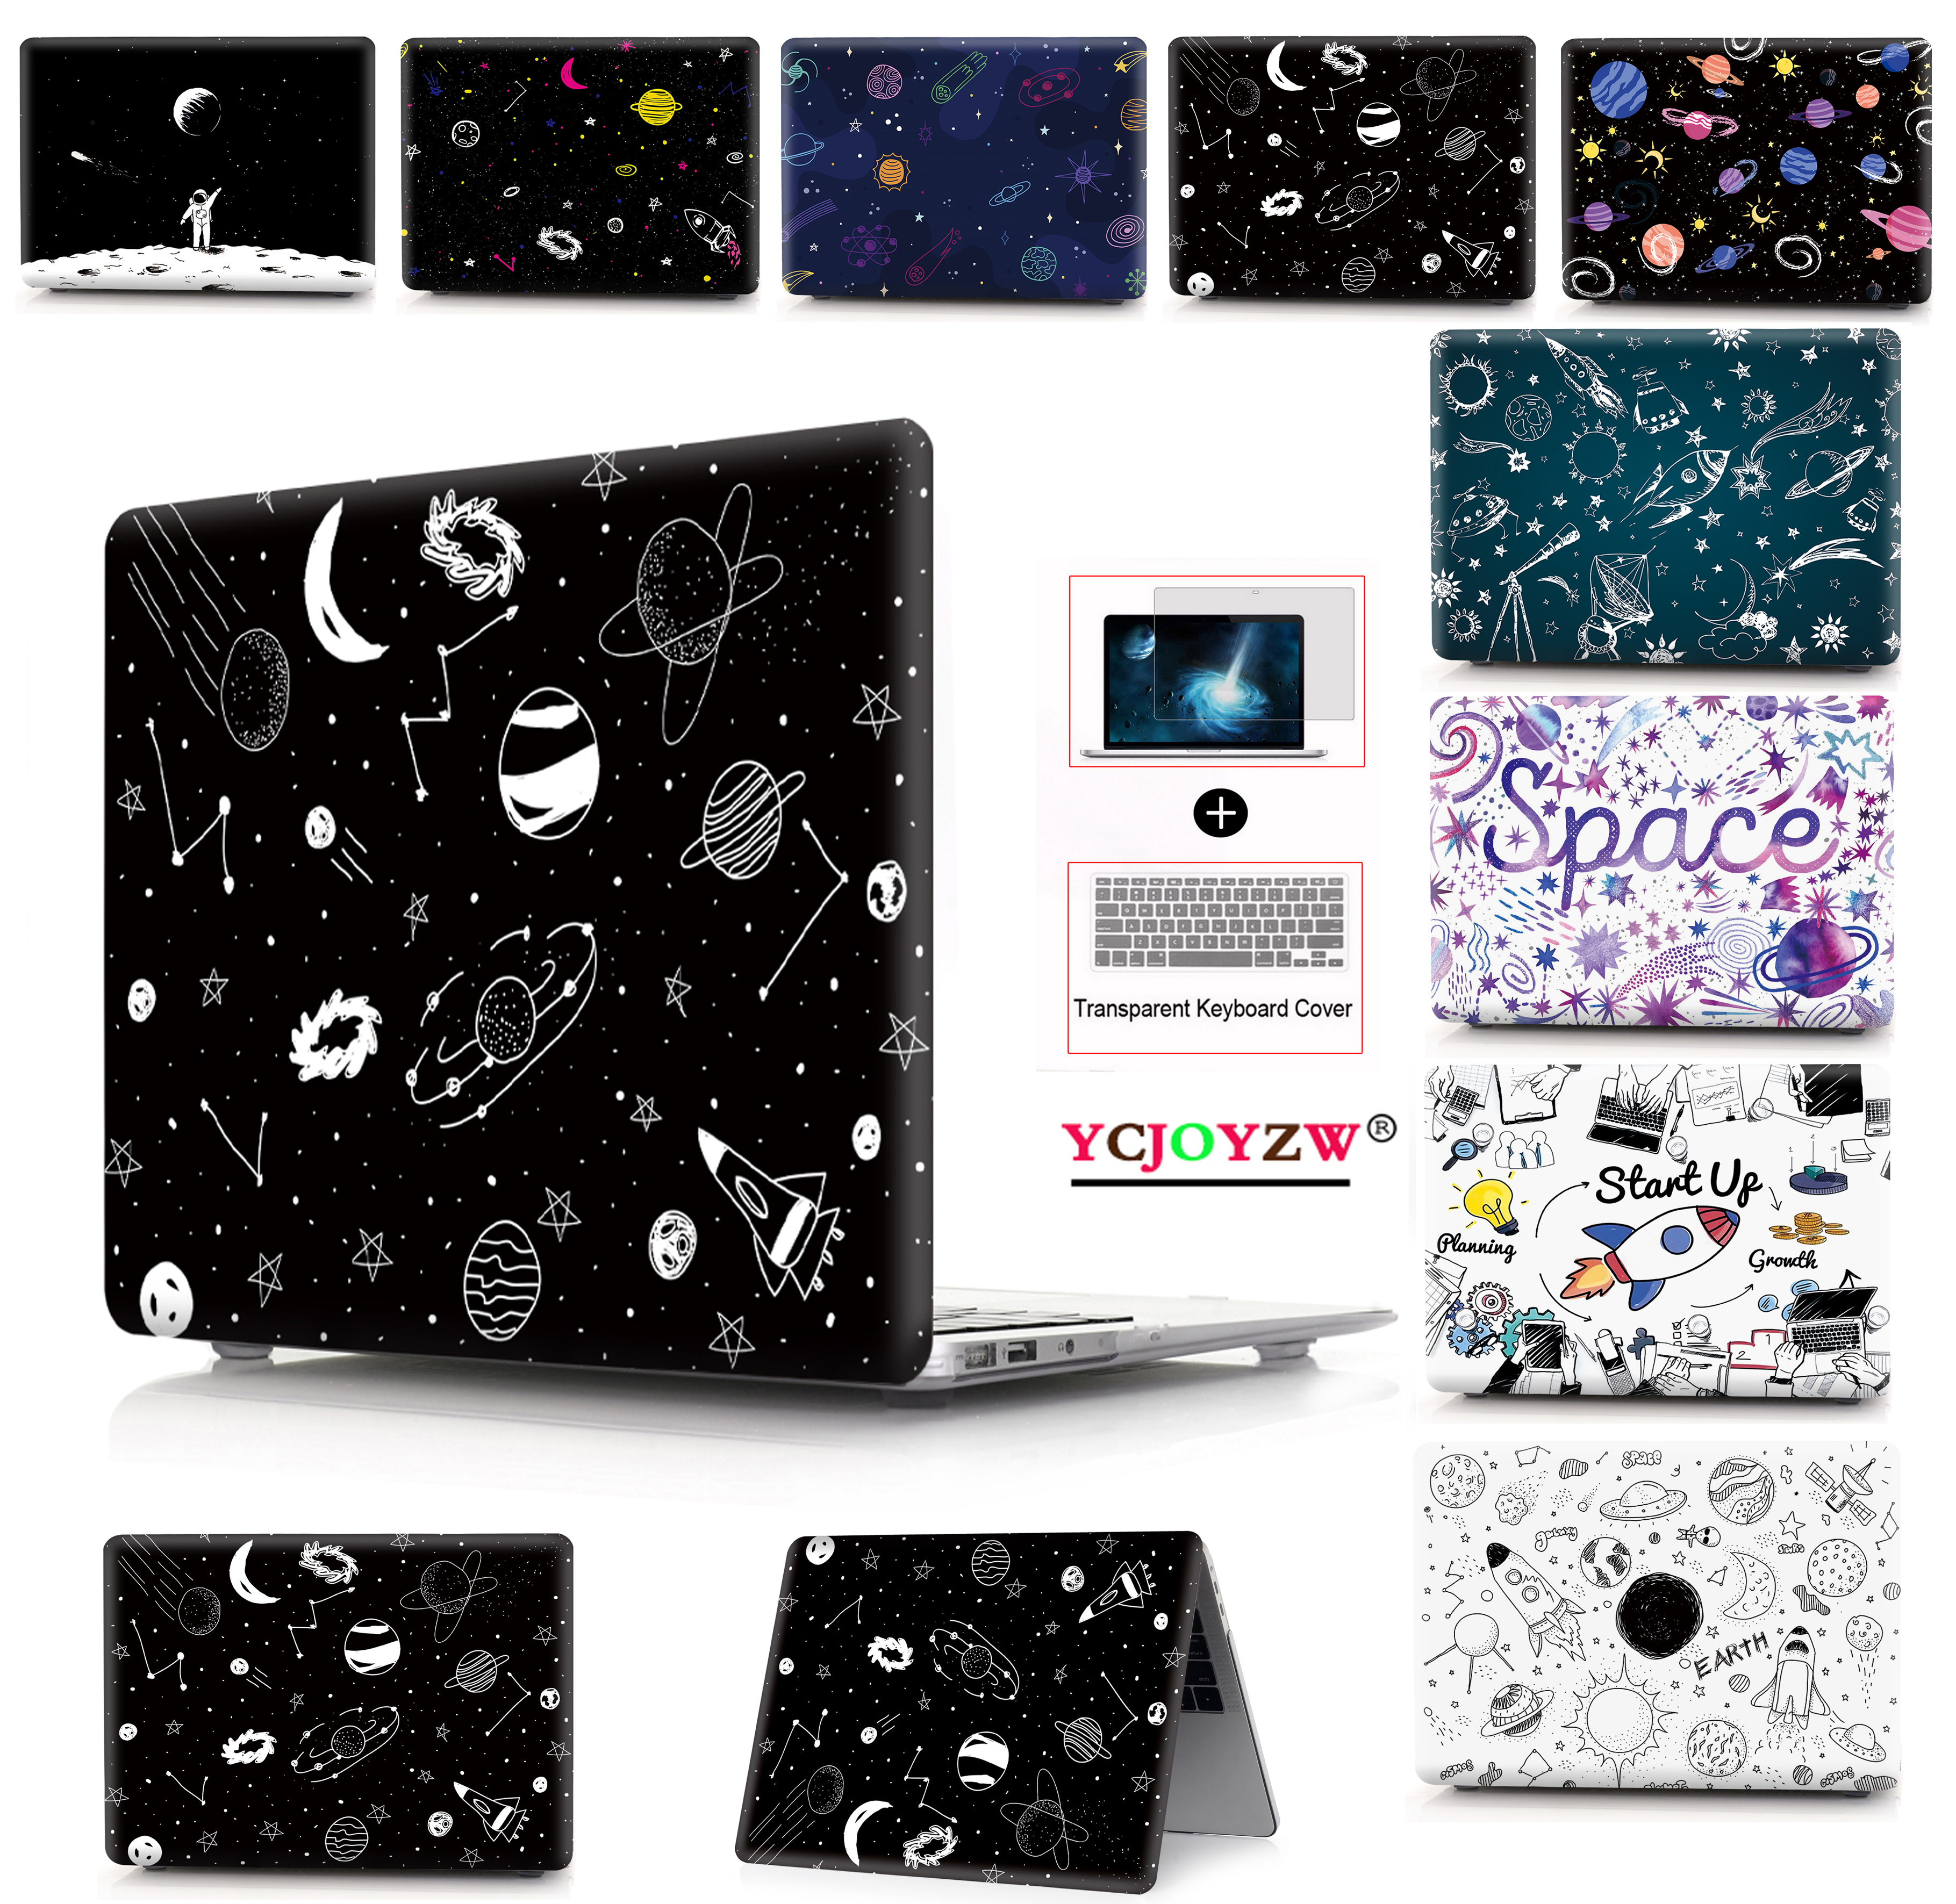 New 2019 Space Case <font><b>Cover</b></font> for MacBook Air 11 air 13 inch A1466 A1932 Pro 12 13 15 Retina A1502 A1706 <font><b>A1708</b></font> A1989 A2159Touch bar image